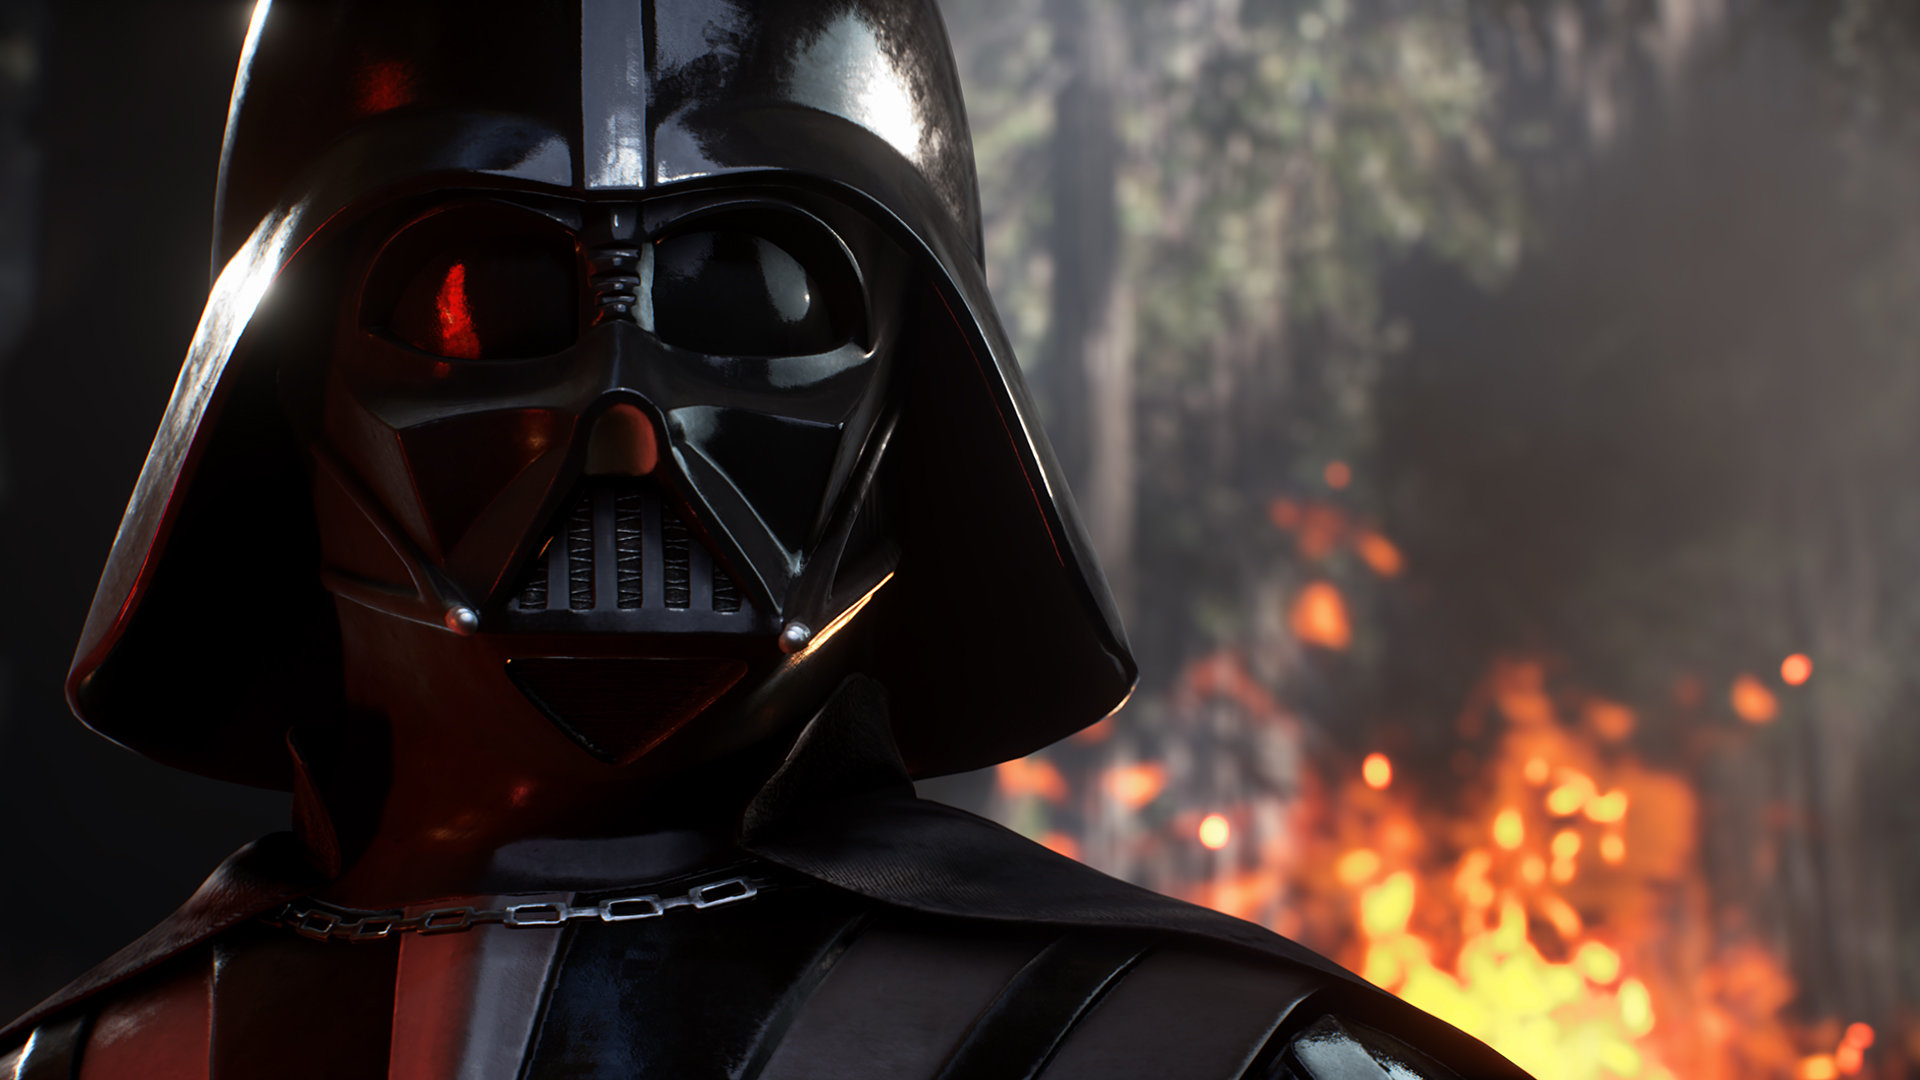 Play Star Wars Battlefront S Death Star Dlc Free And Earn Double Xp This Weekend Se7ensins Gaming Community